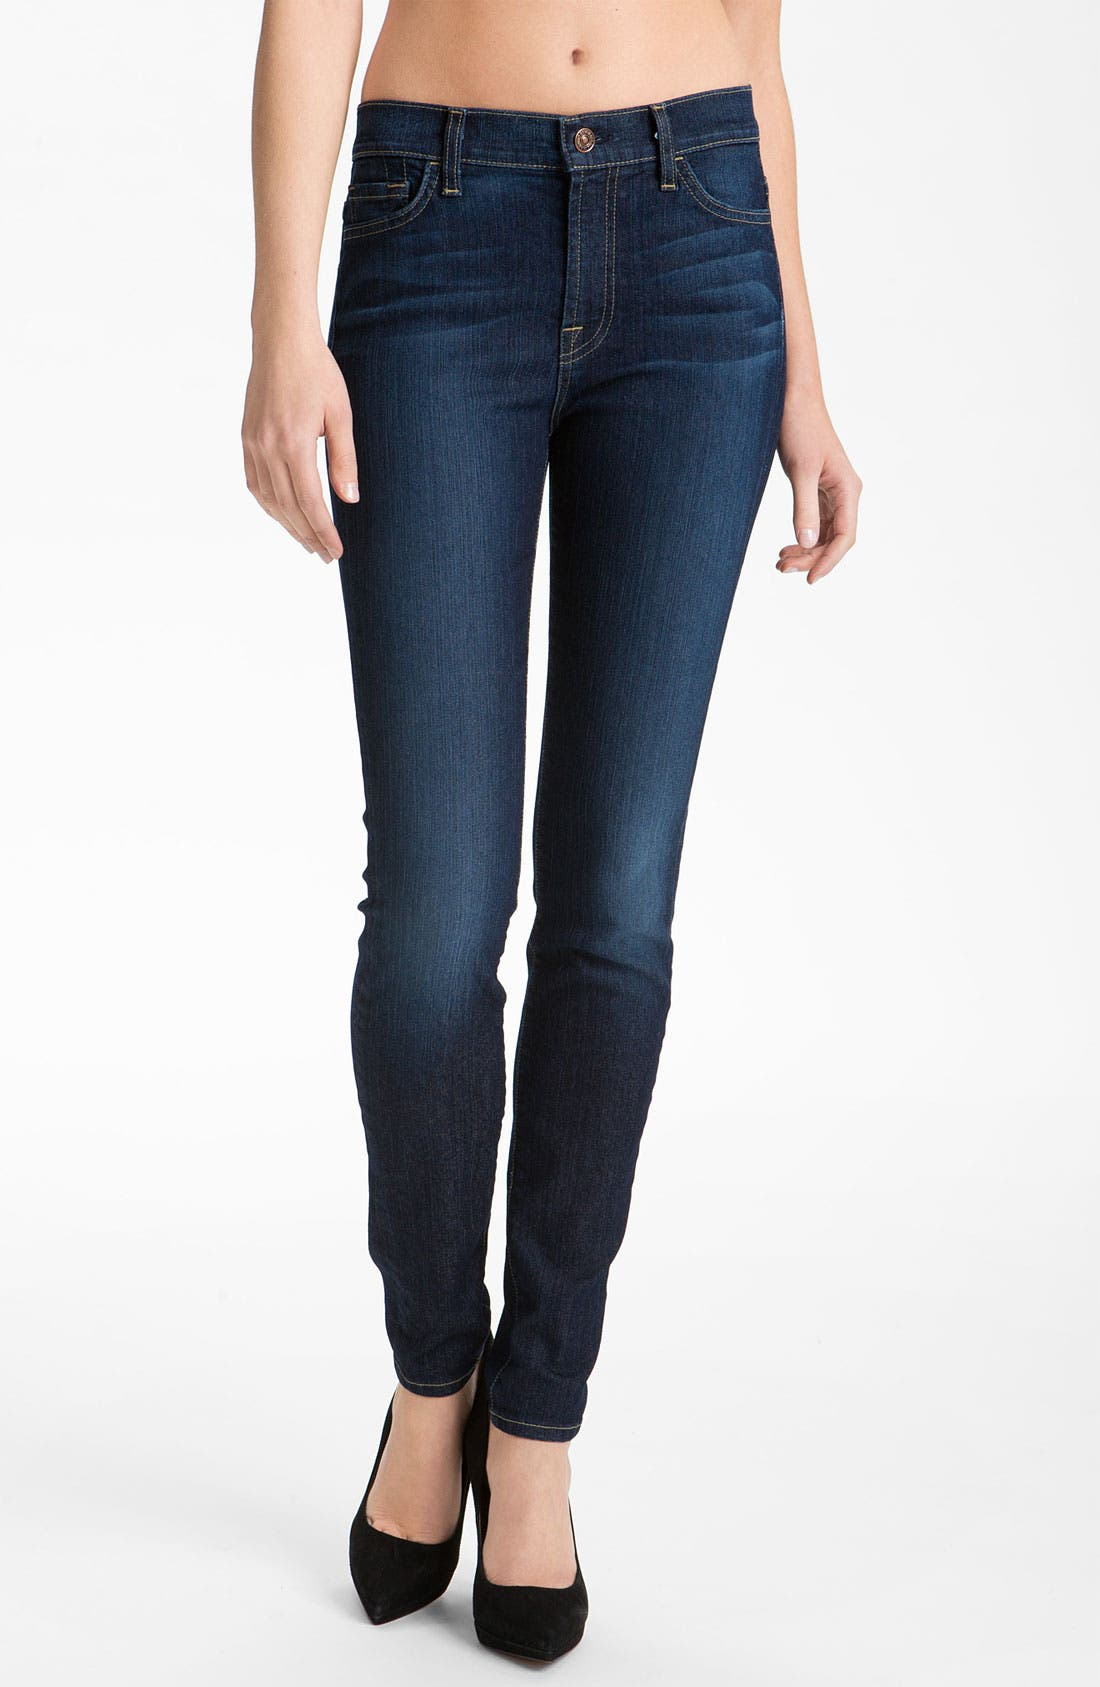 Main Image - 7 For All Mankind® 'The Skinny' Stretch Jeans (Rich Warm Blue) (Online Exclusive)